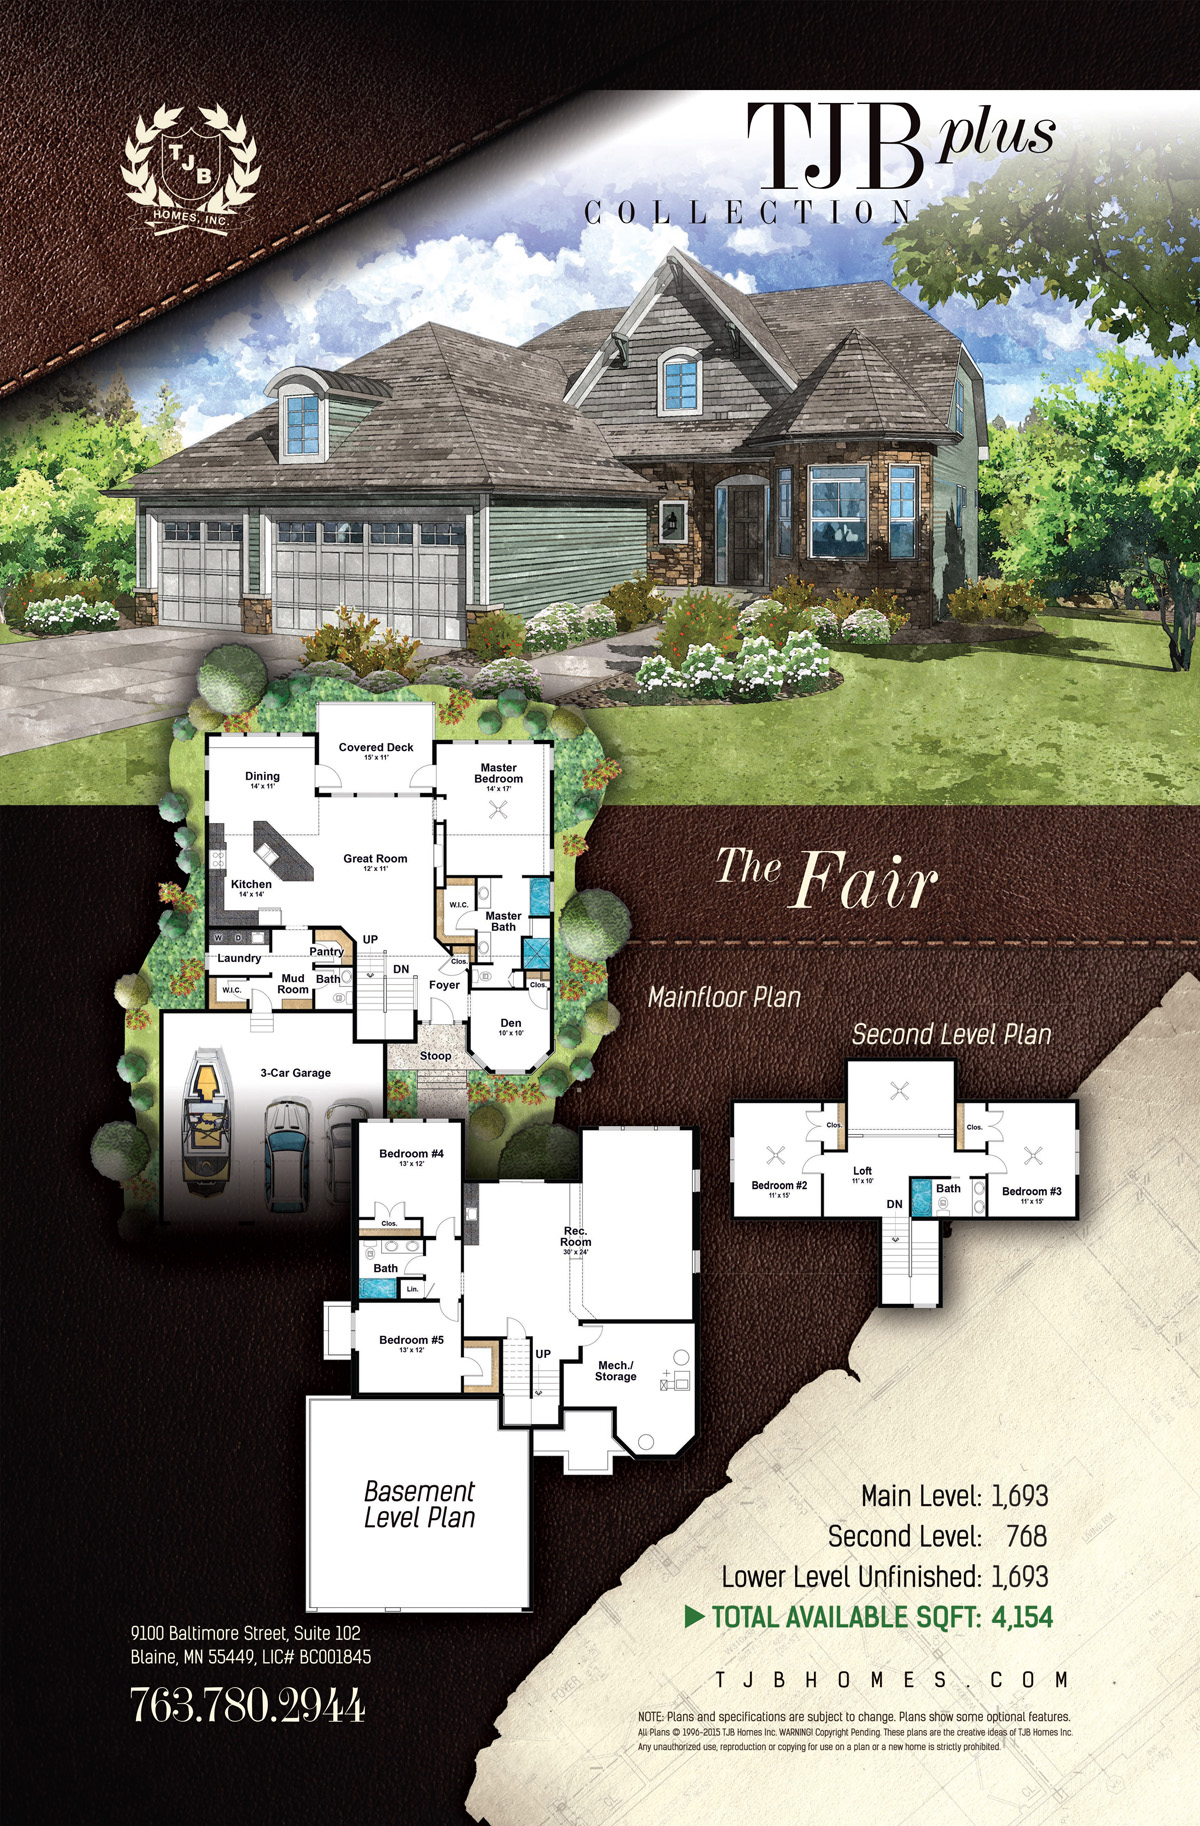 TJB Plus Collection Home Plans - The Fair